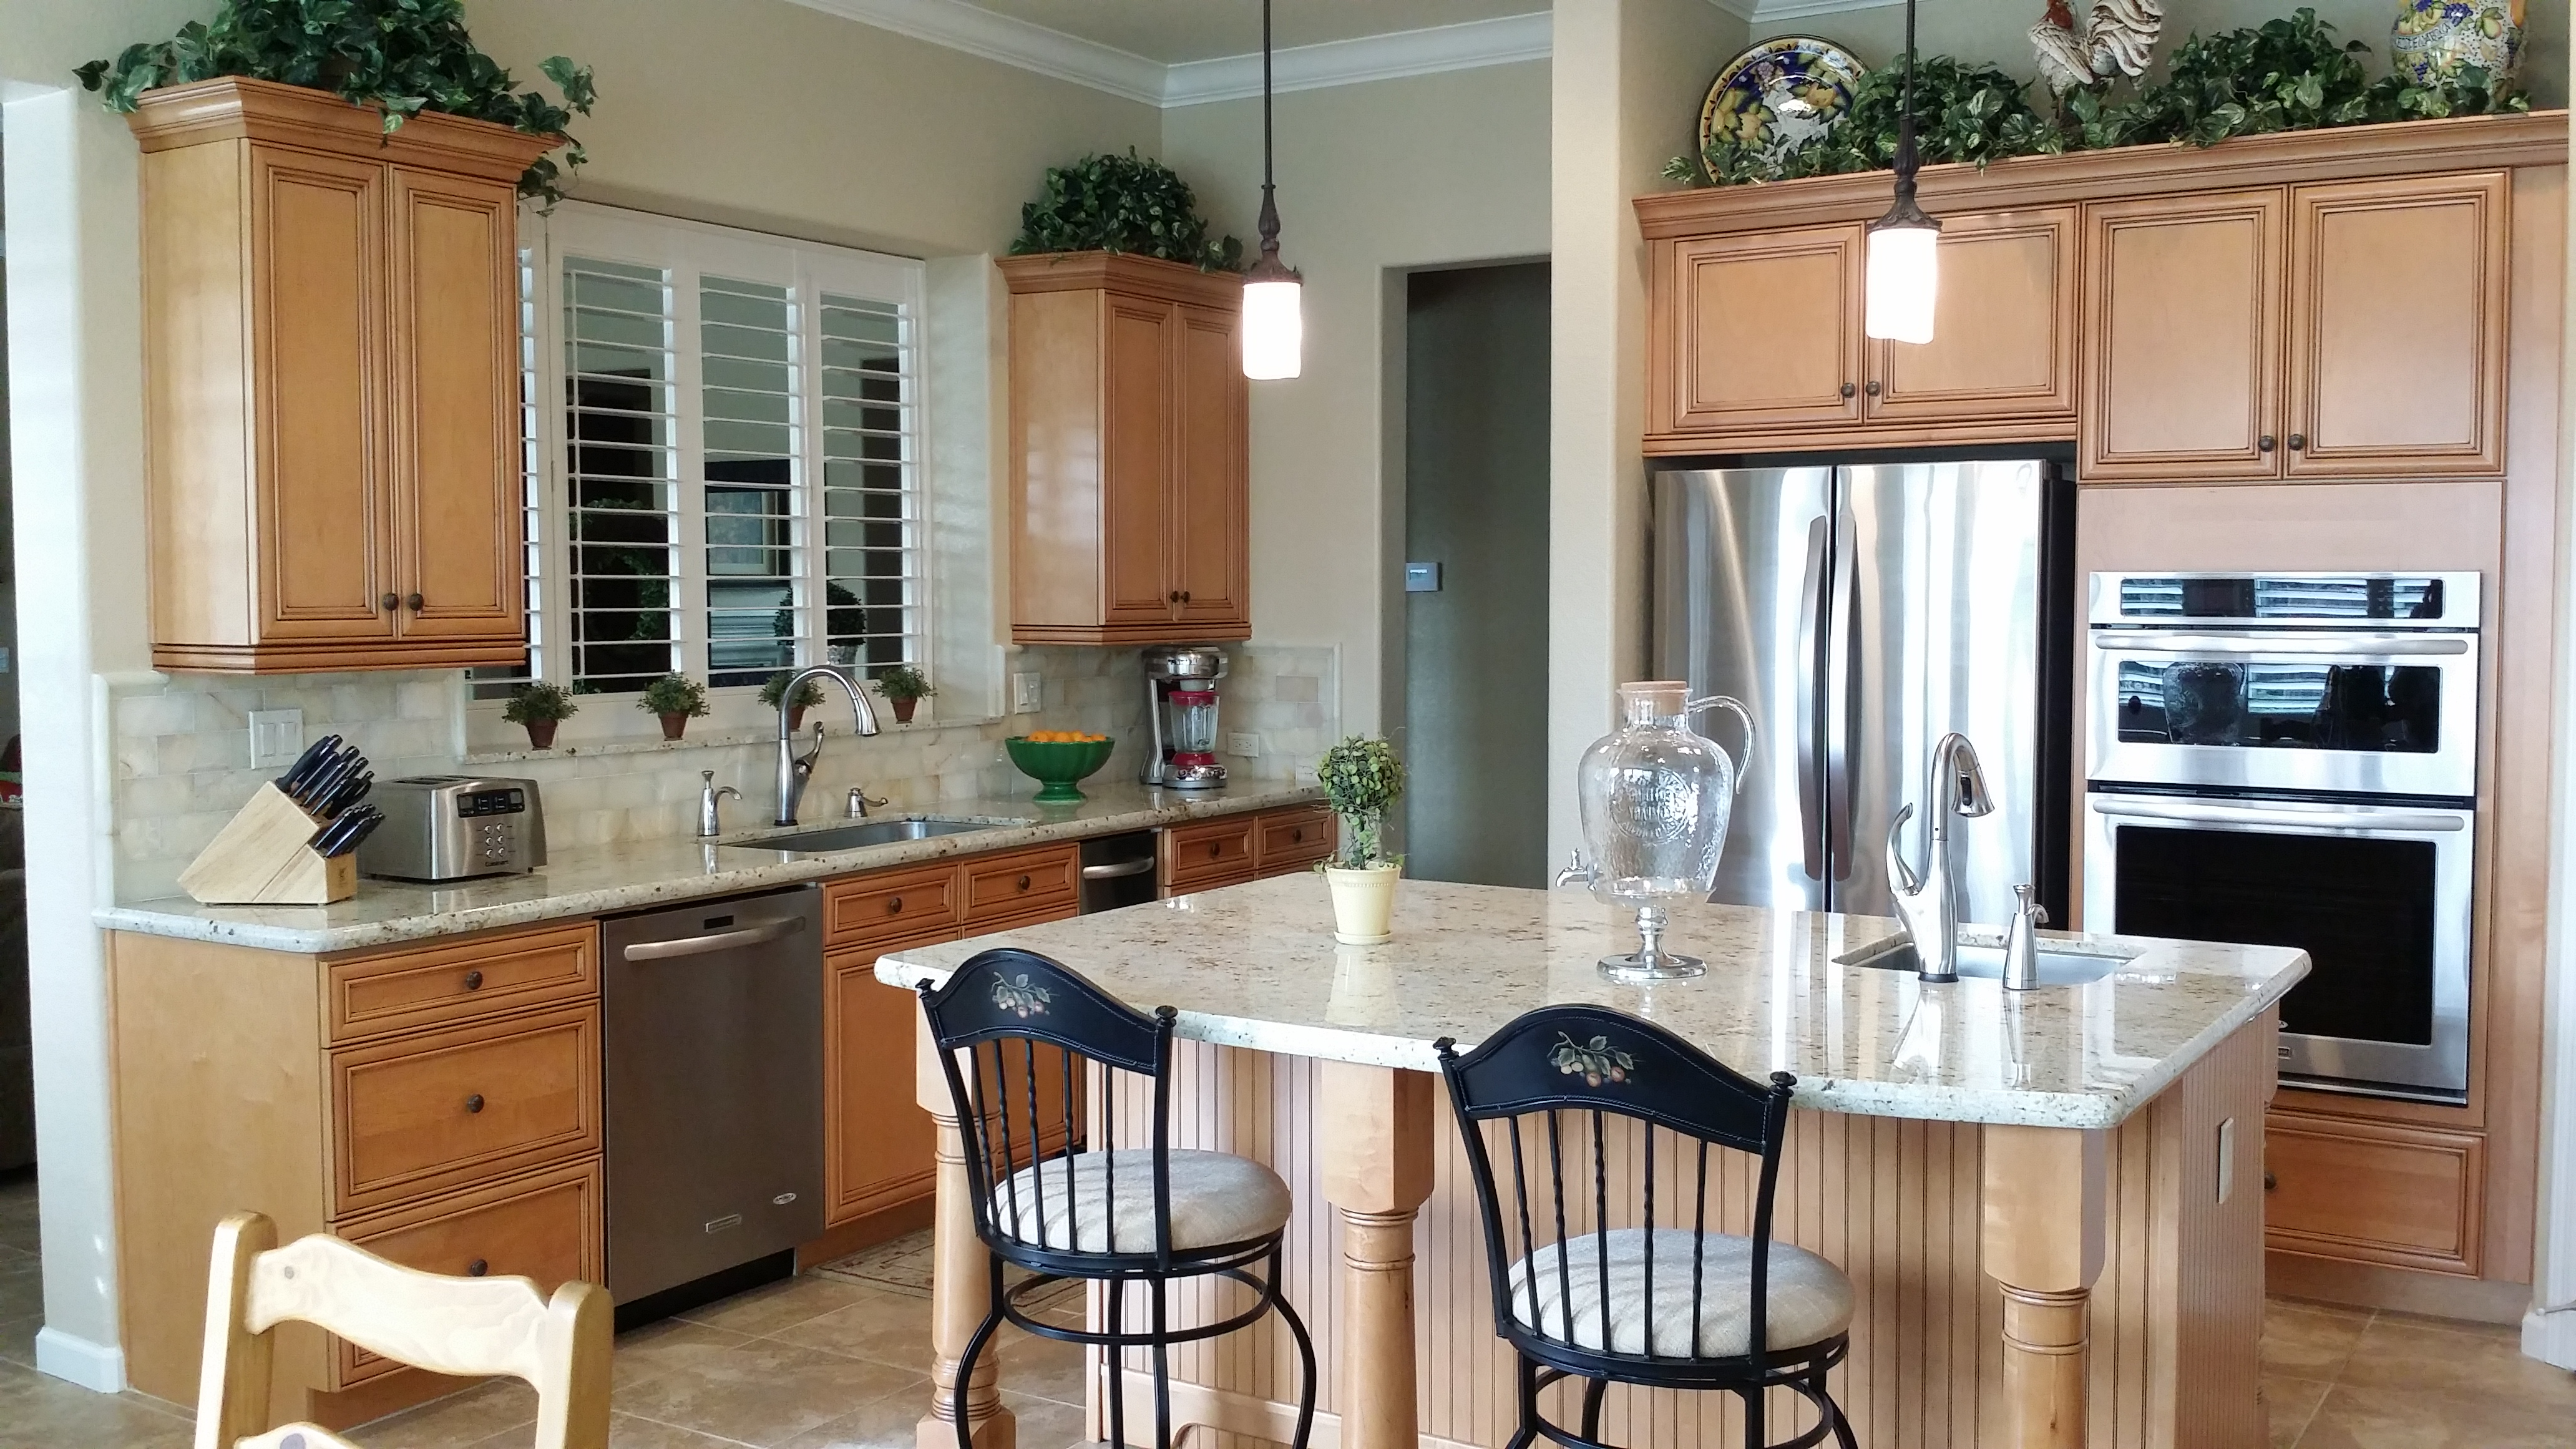 Traditional kitchen with light brown cabinets and white counters